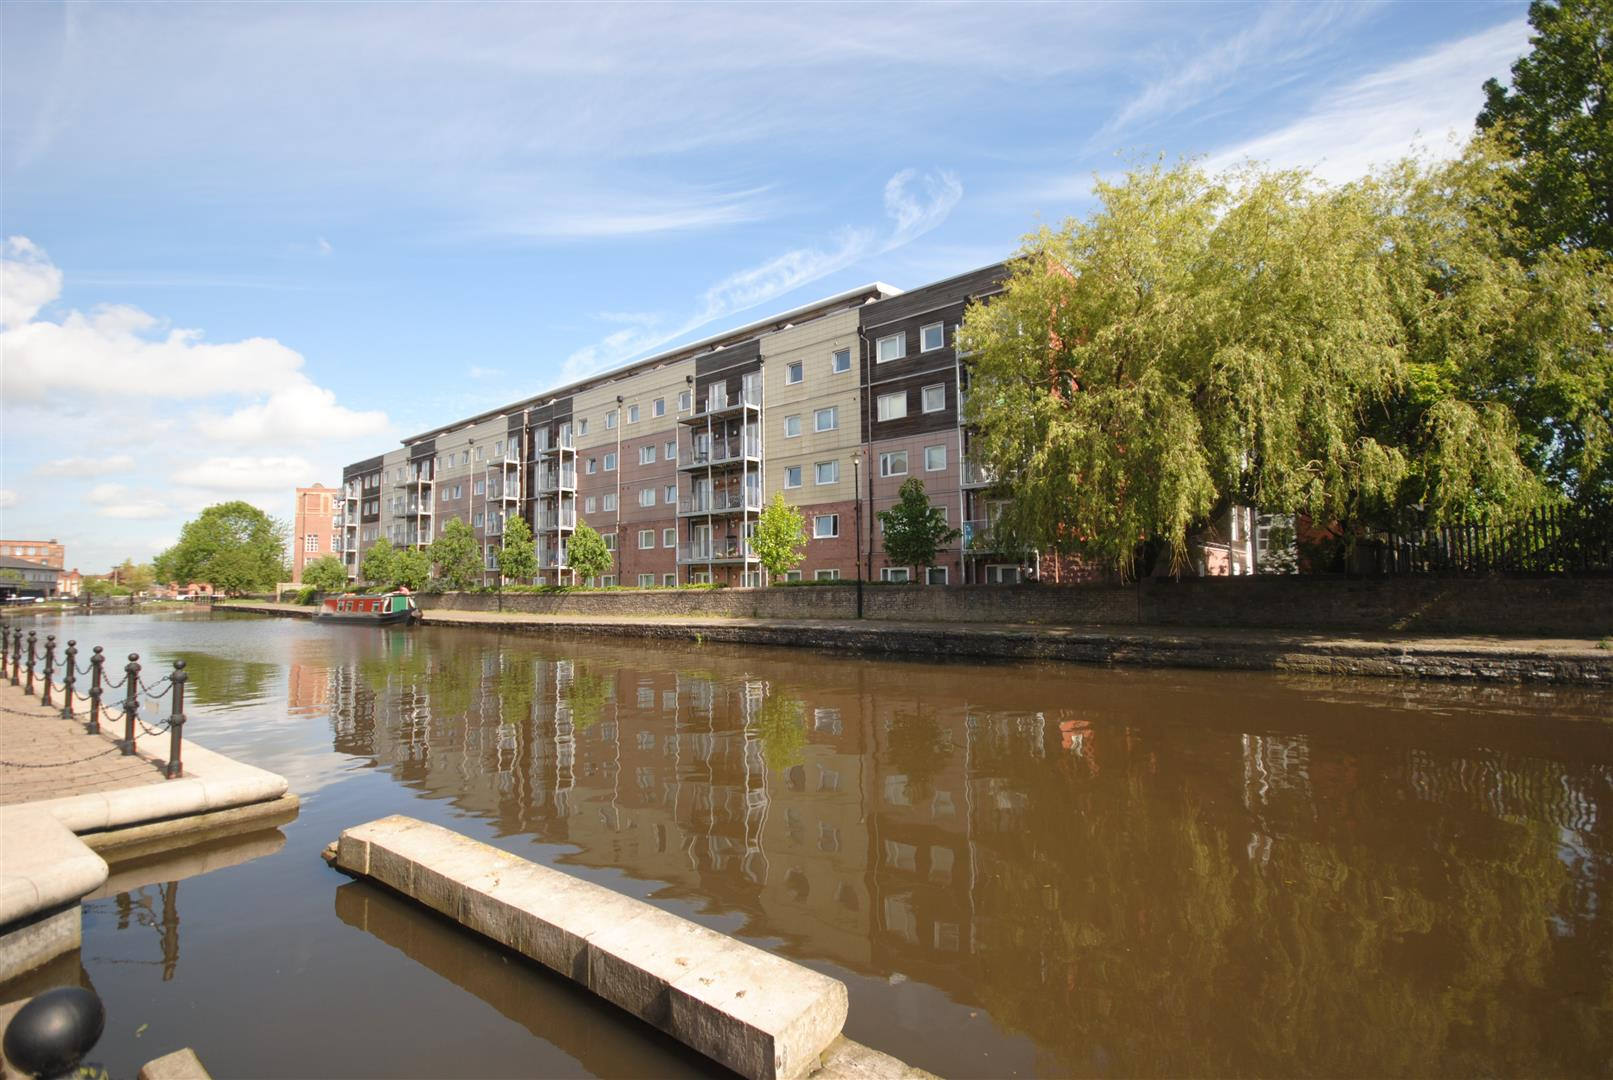 2 Bedrooms Apartment Flat for sale in Heritage Way, Wigan